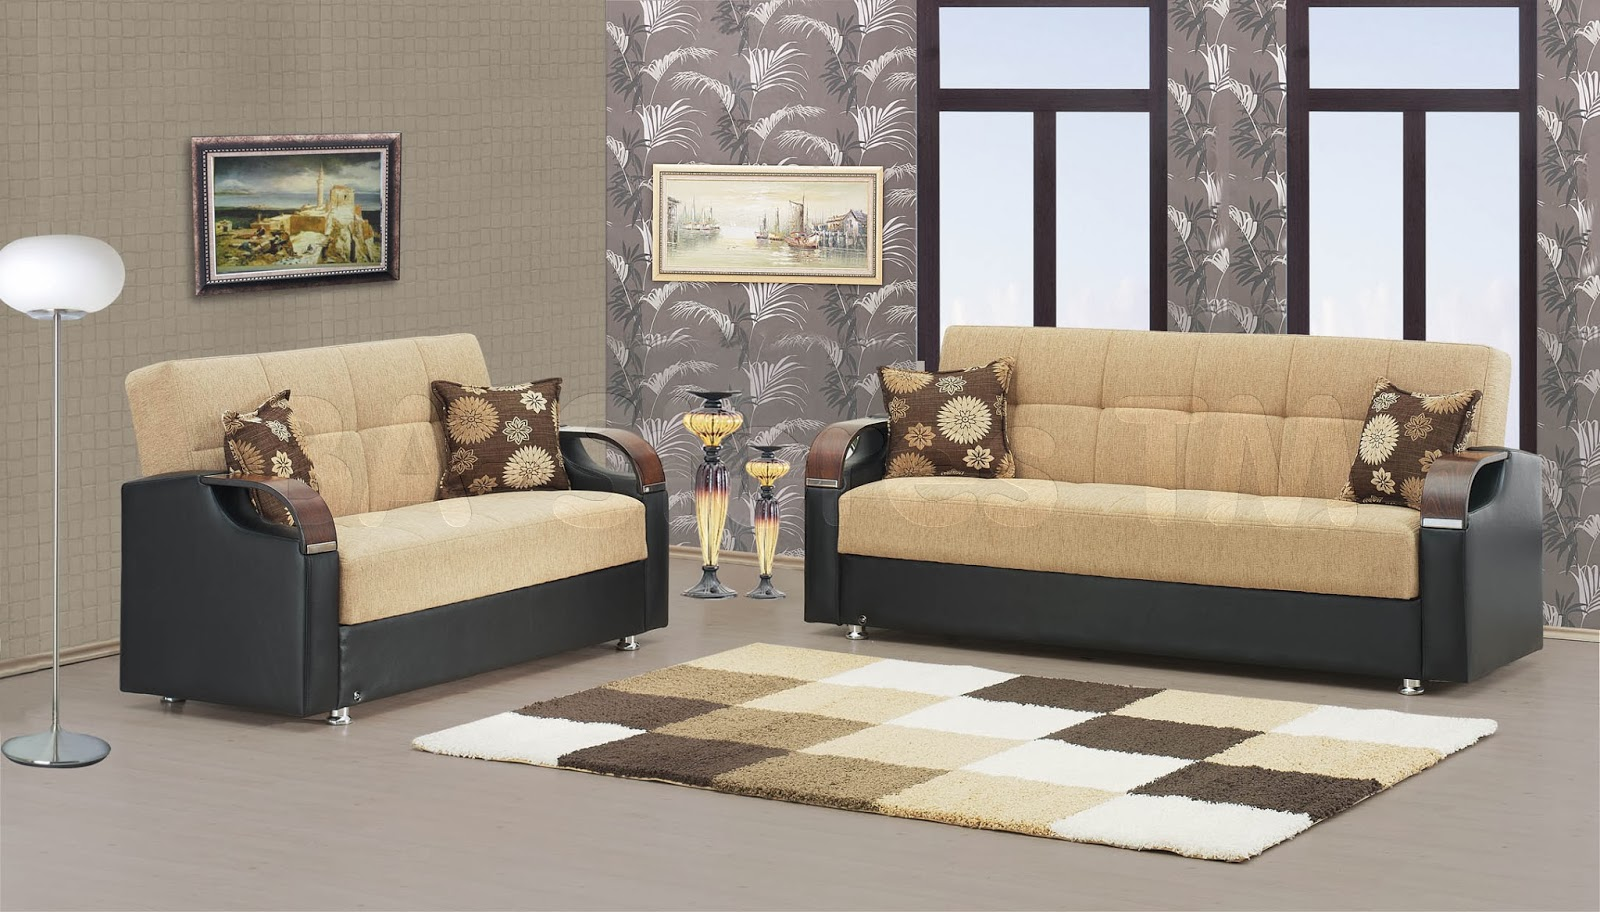 new fashion in sofa set design 2014 On living room set design